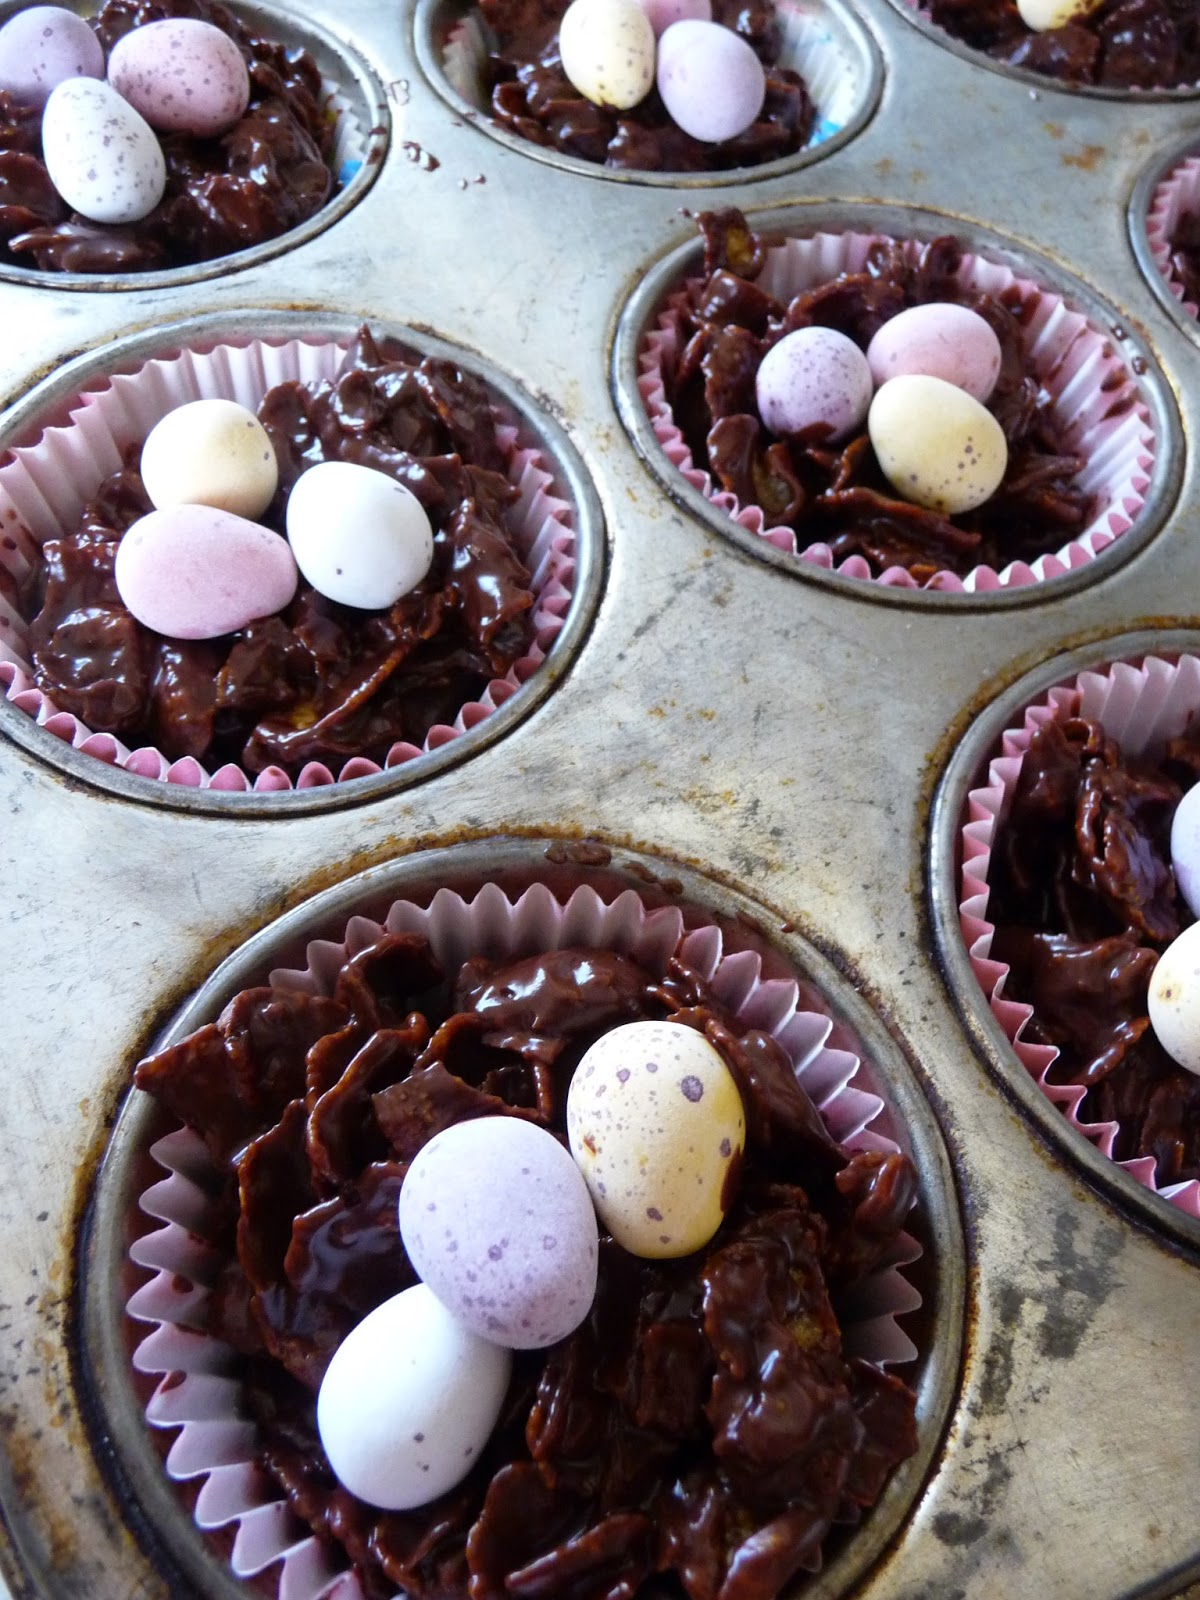 Wheat Egg Shredded Easter Cakes